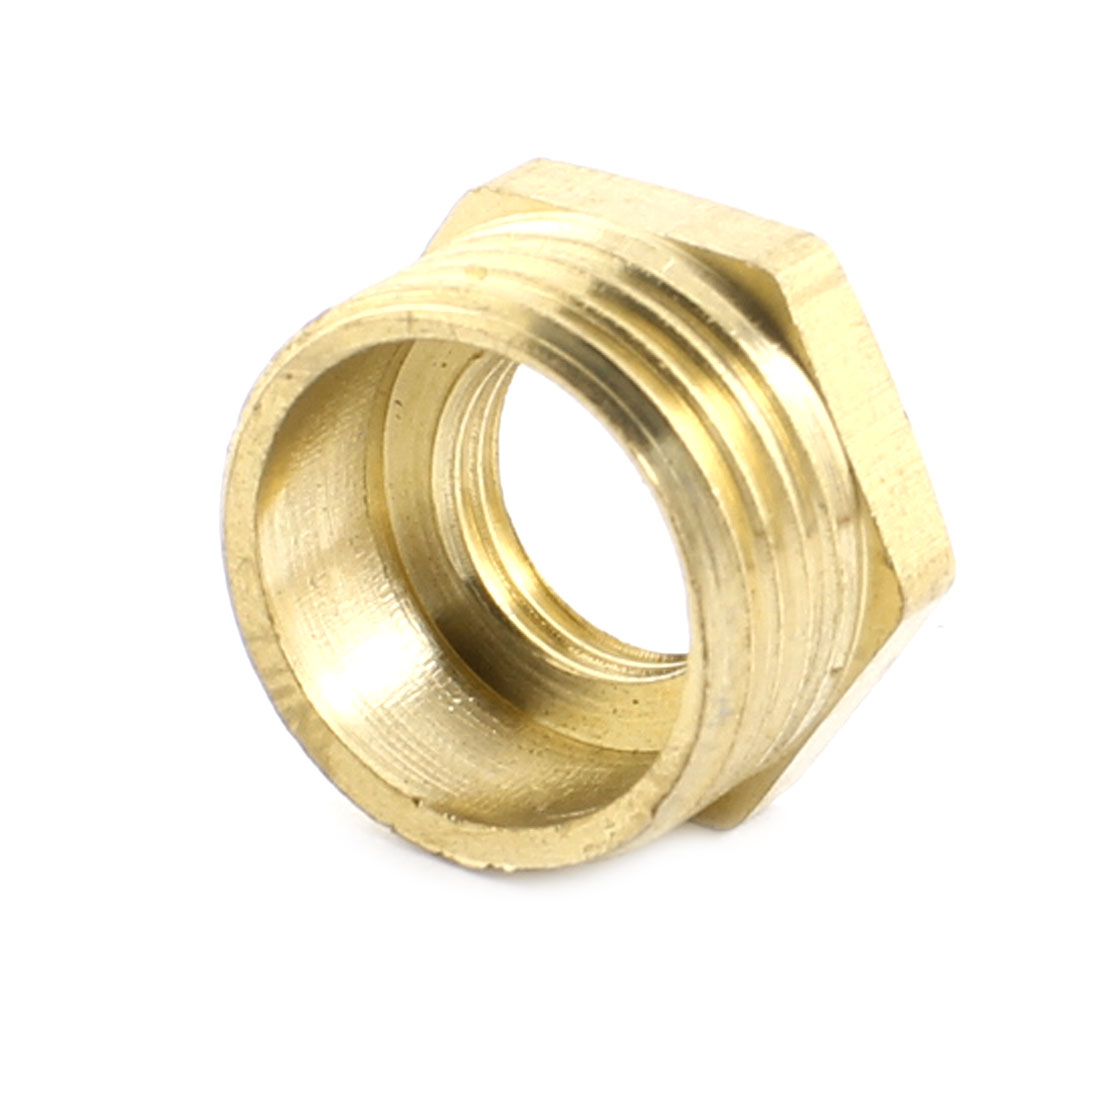 1/2PT x 1/4PT Male/Female Thread Air Pipe Hose Tube Fittings Hex Head Socket Adapter Connector Plug Caps